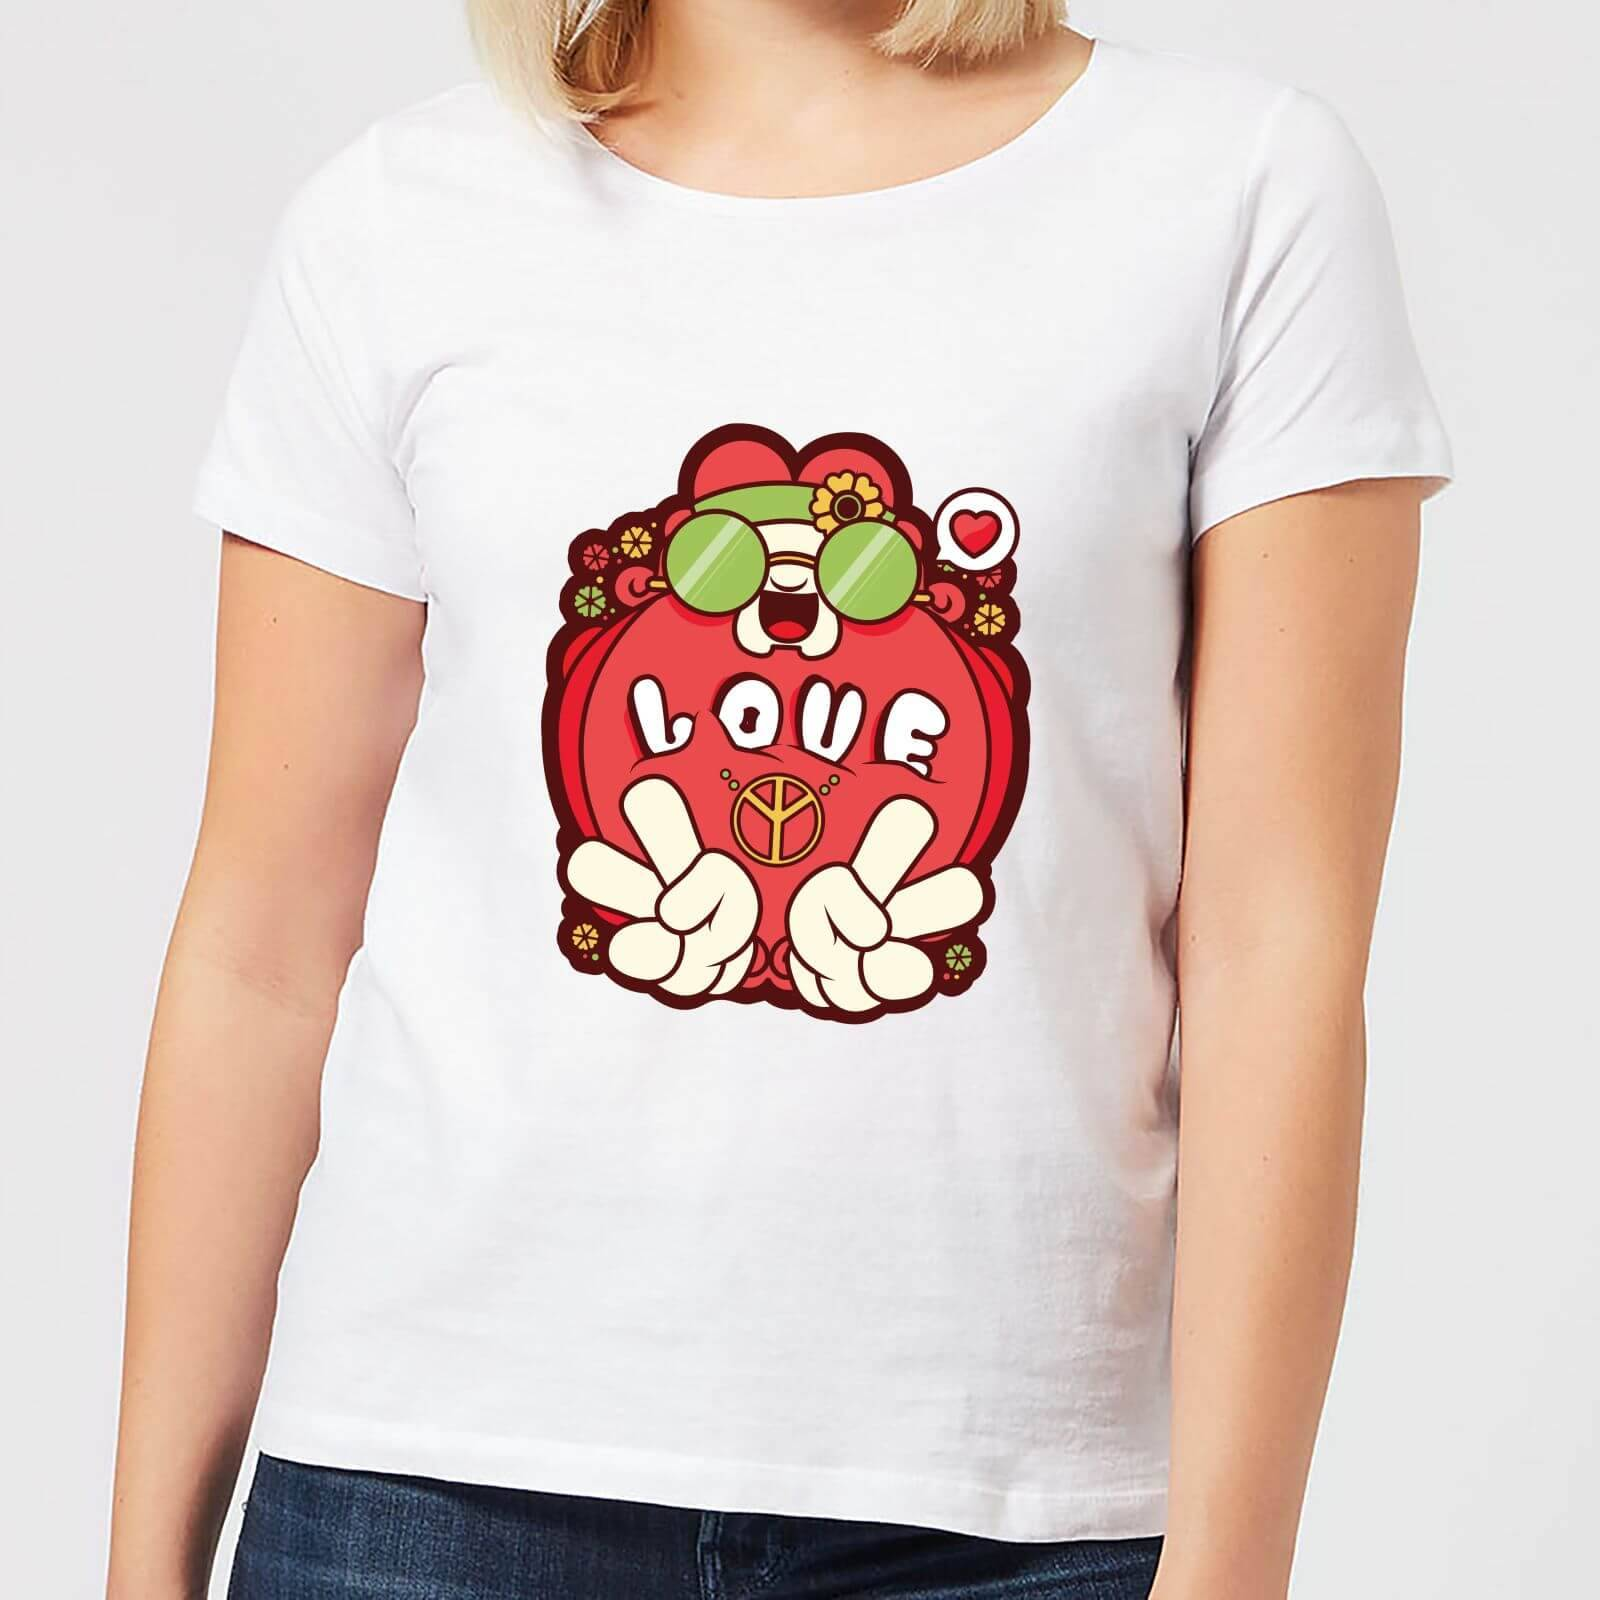 IWOOT Hippie Love Cartoon Women's T-Shirt - White - S - White